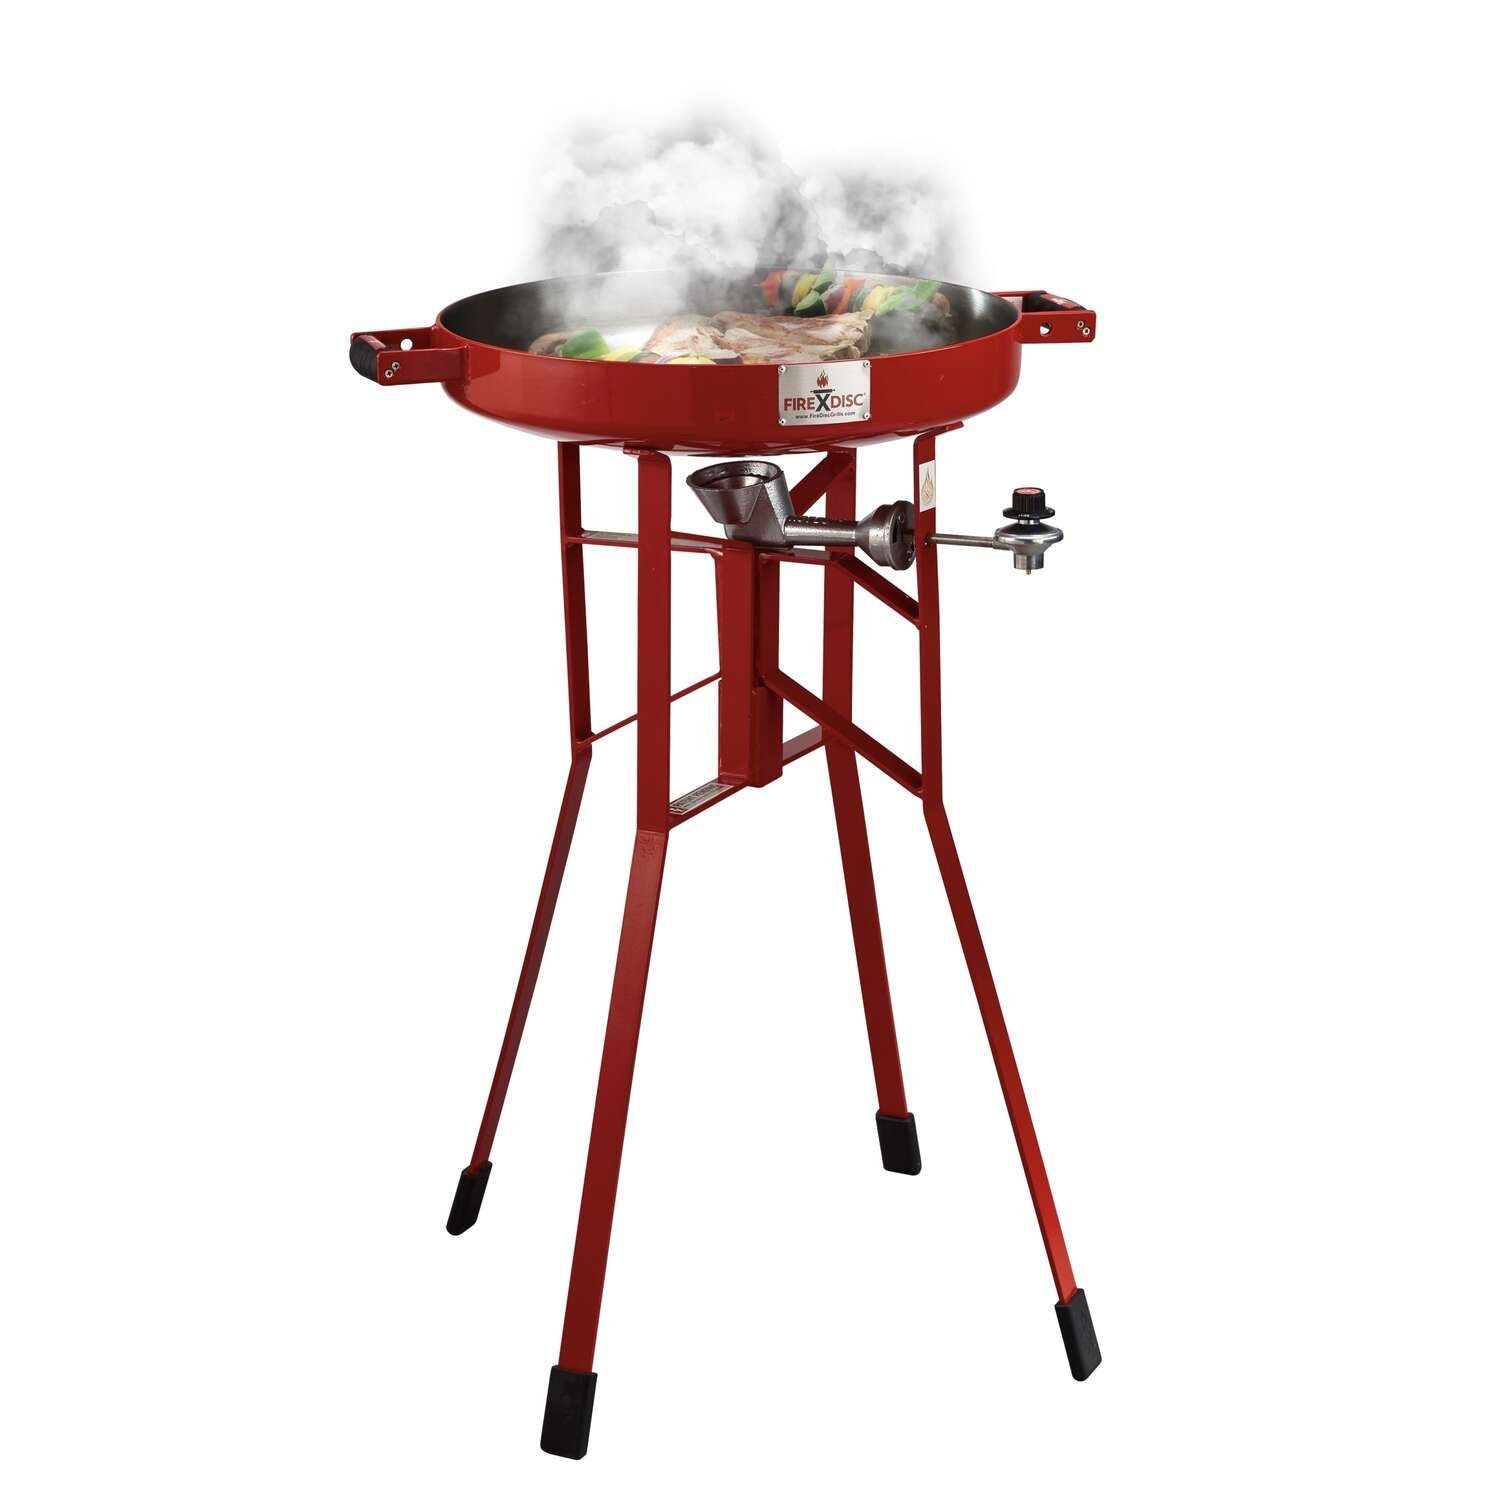 FireDisc  Liquid Propane  Grill  Red  1 burners